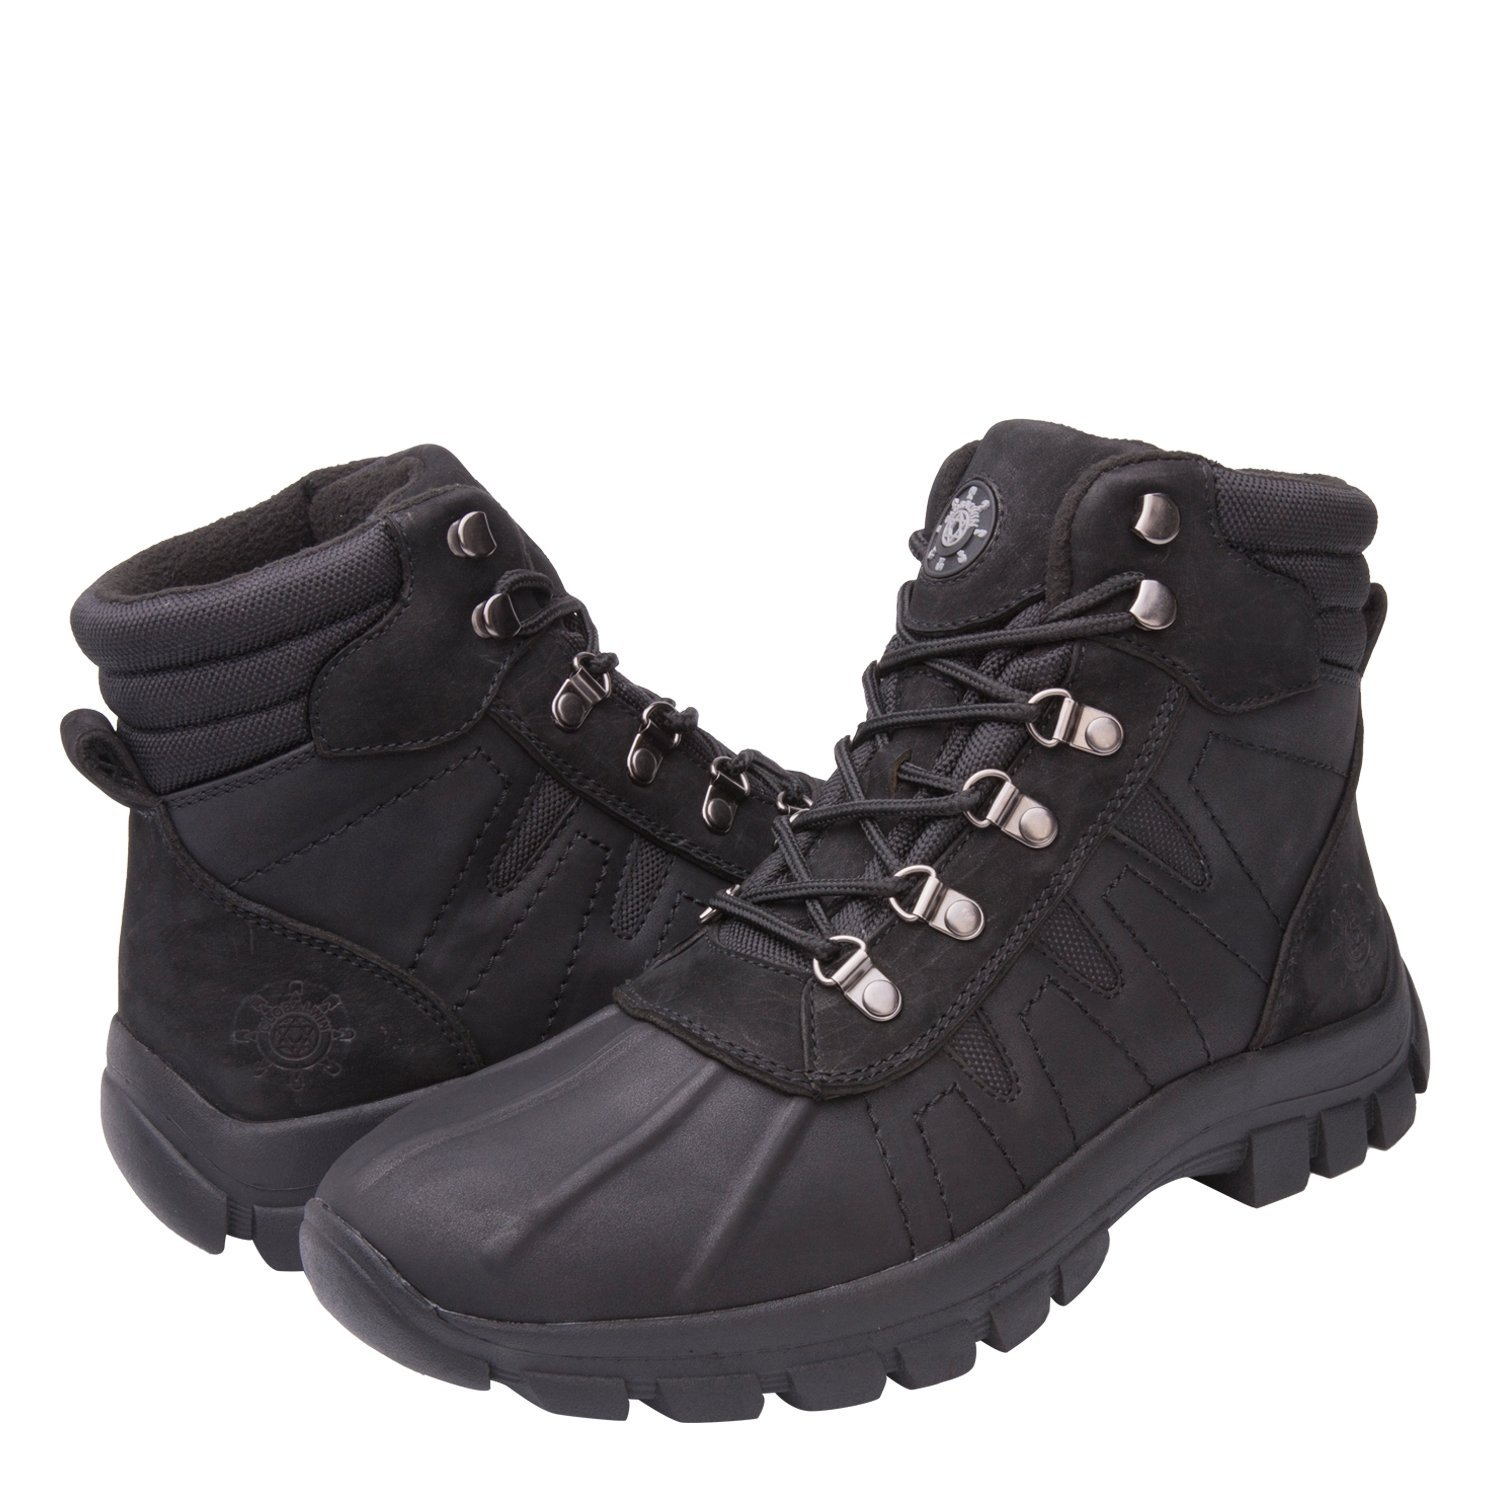 GlobalWin - 16301 Snow Boots 9.5 M US BLACK by KINGSHOW